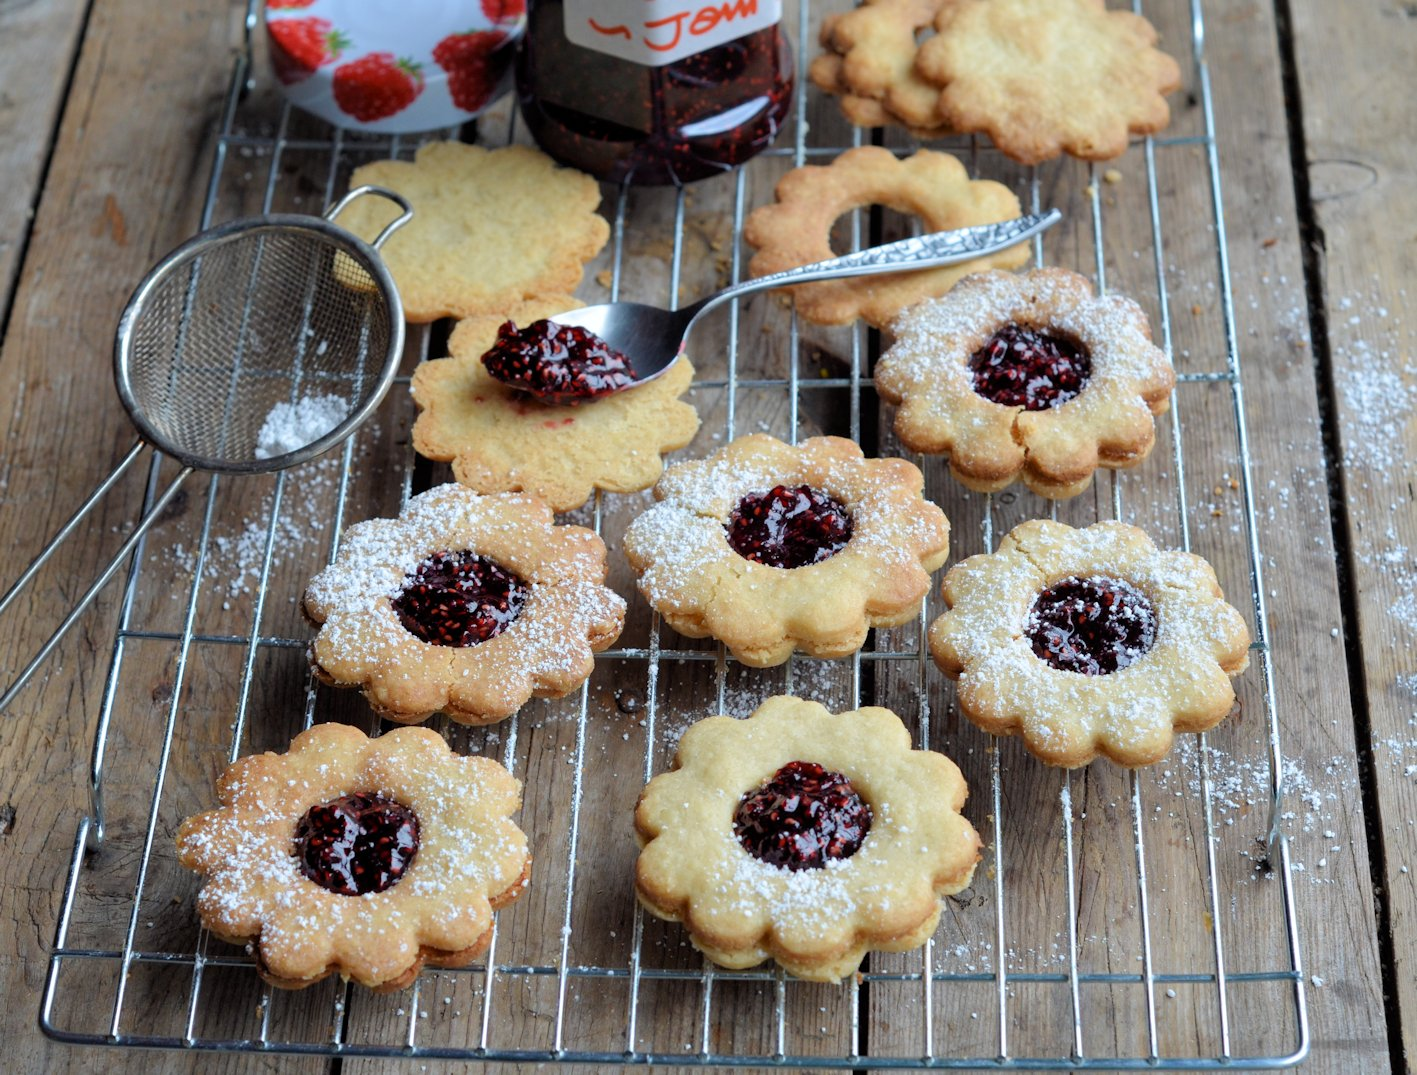 Posh Jam Biscuits. Jammie Daisy Dodgers (Biscuits/Cookies) Recipe. Relate